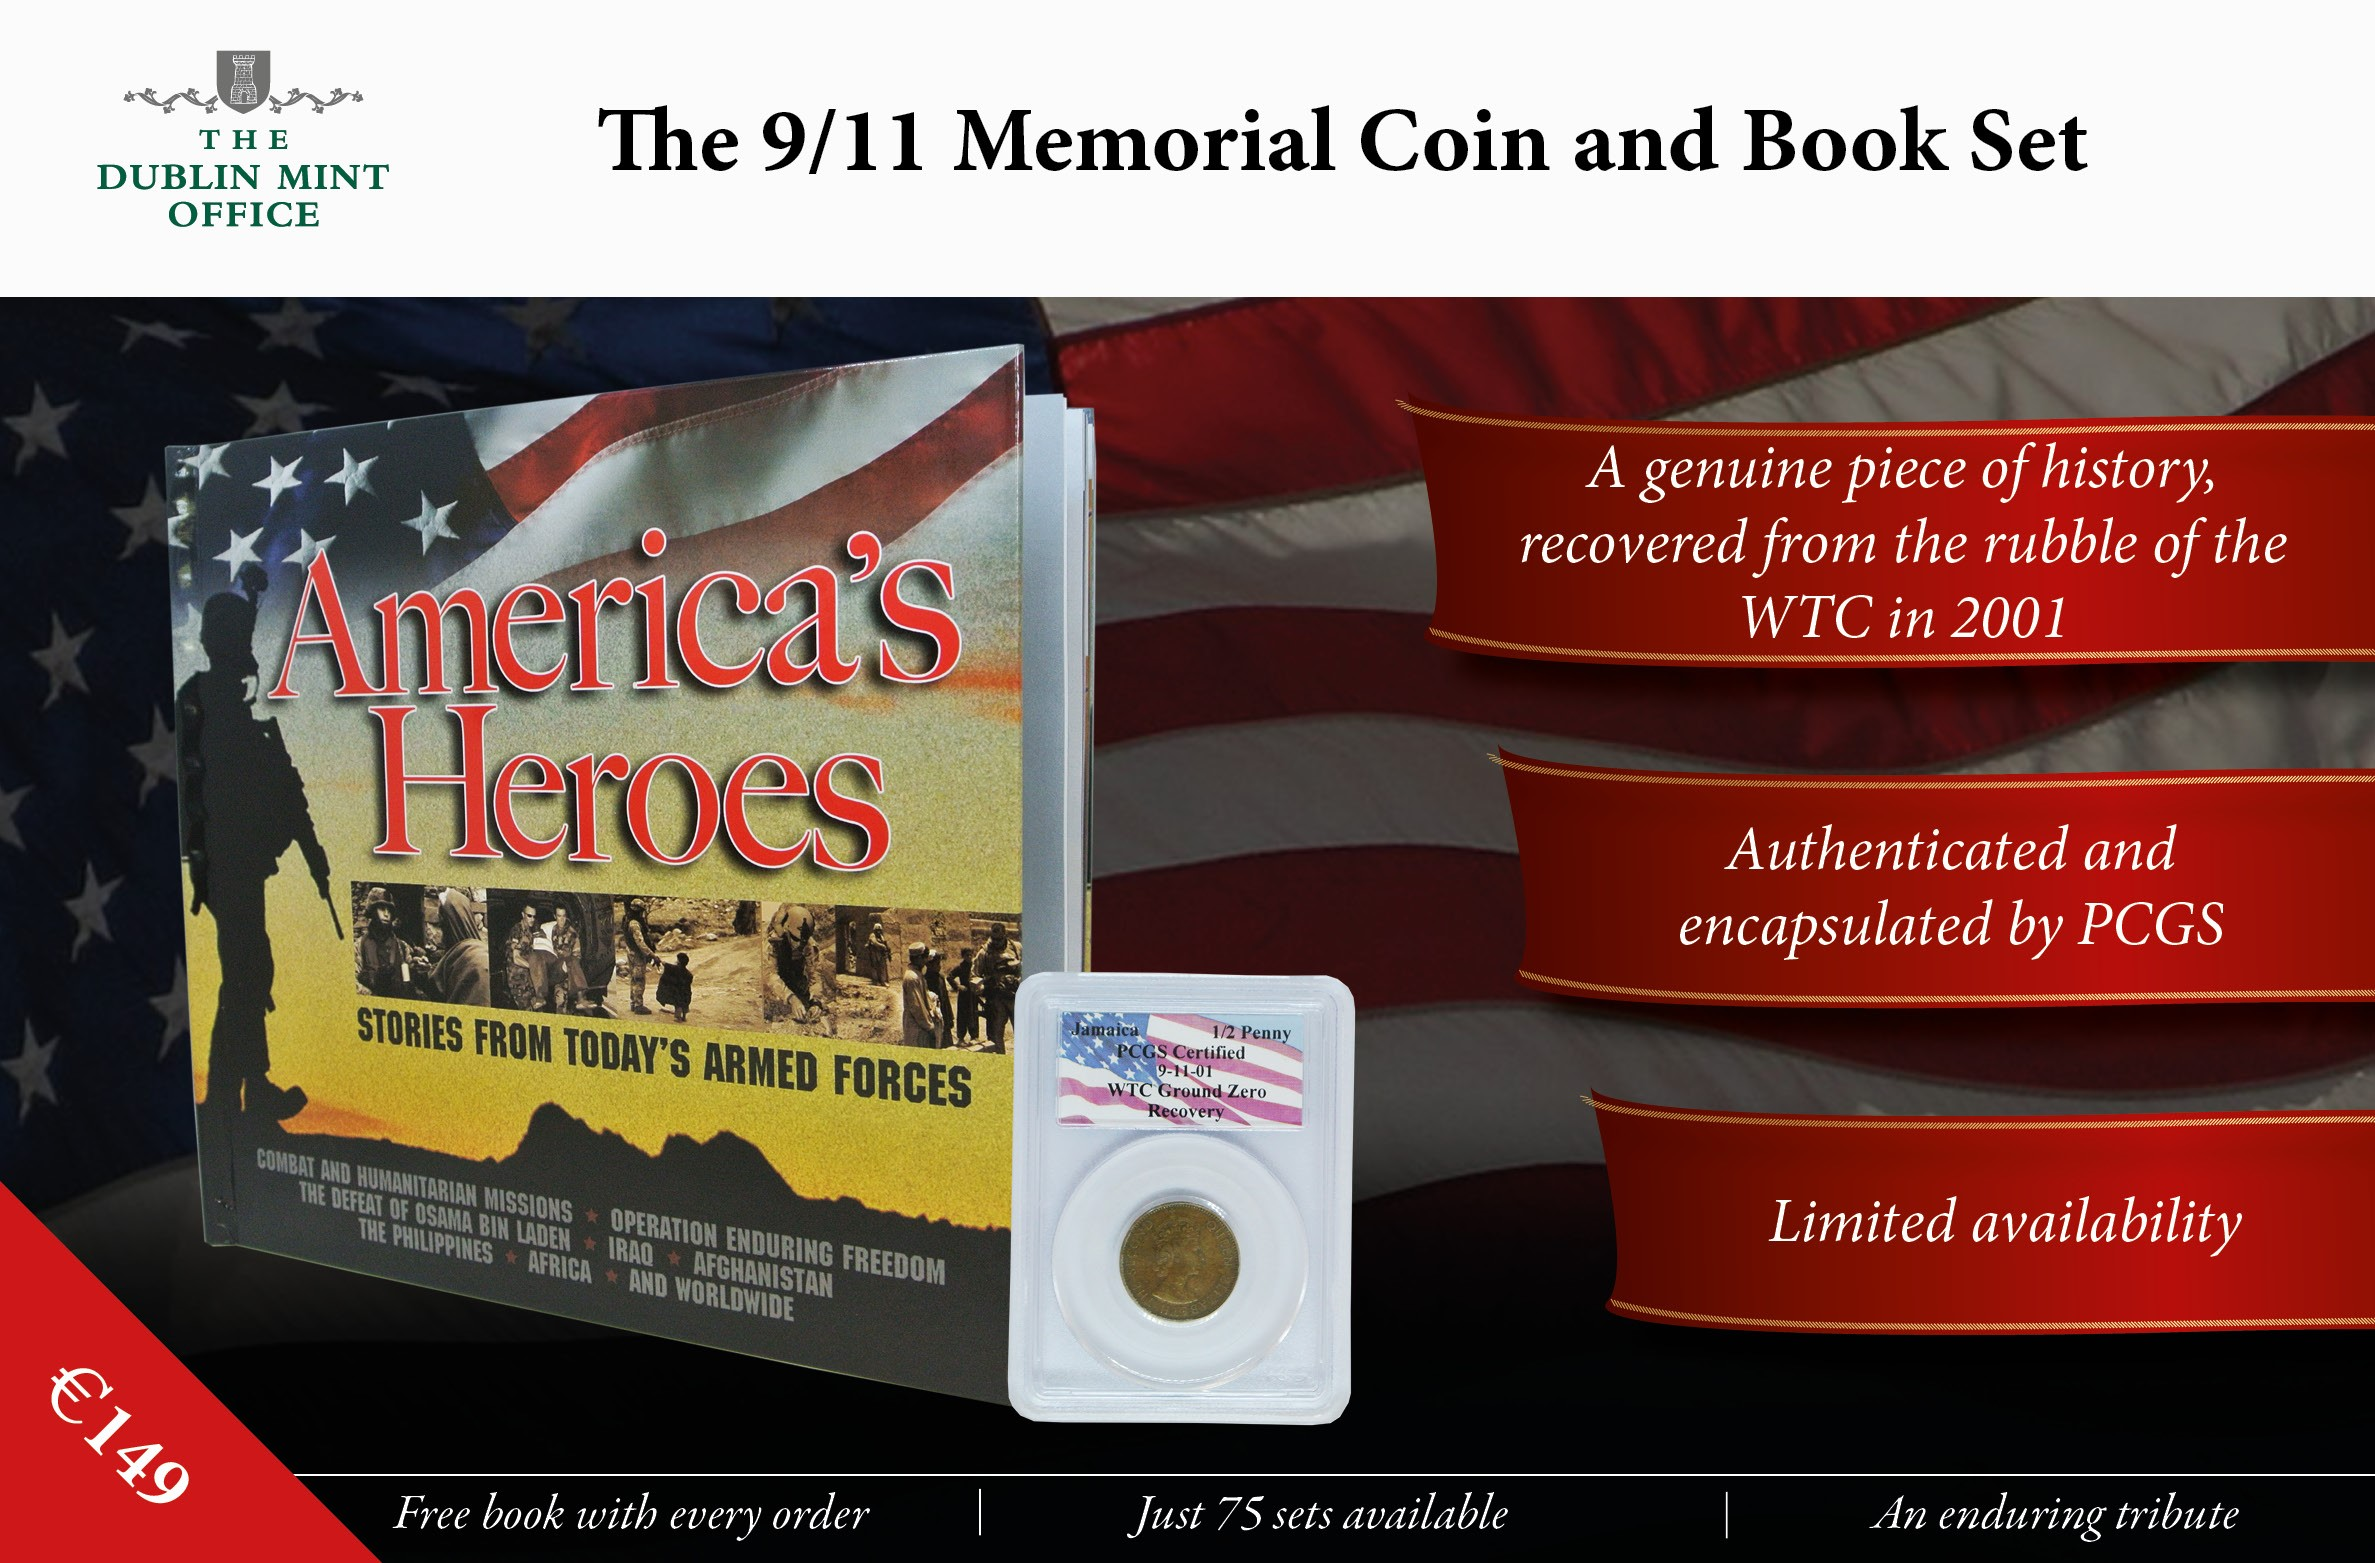 The 9/11 Memorial Coin and Book Set